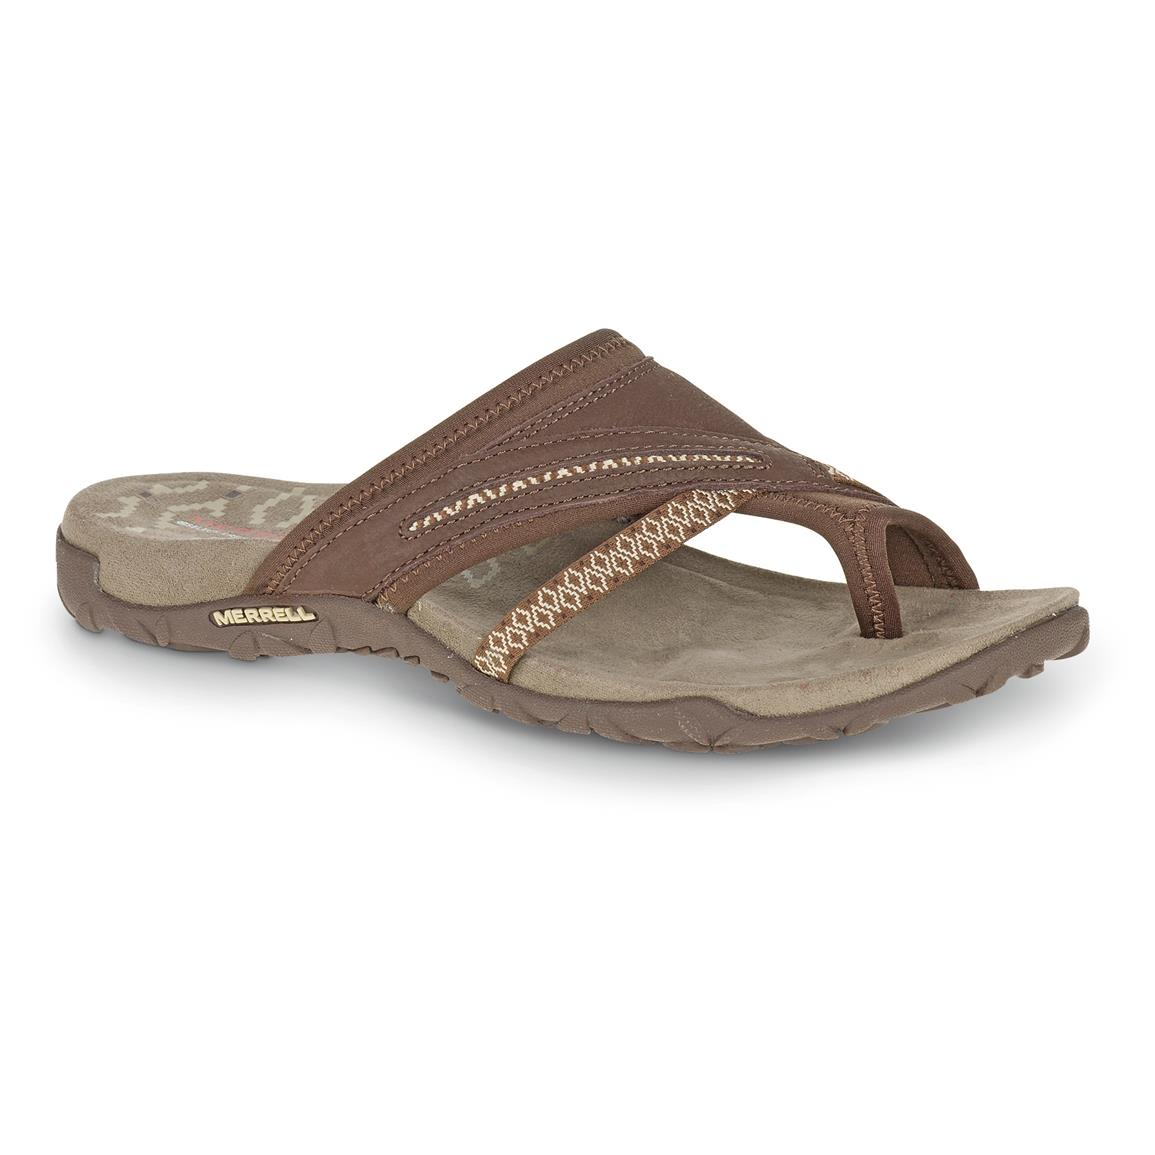 Merrell Women's Terran Post II Sandals, Dark Earth